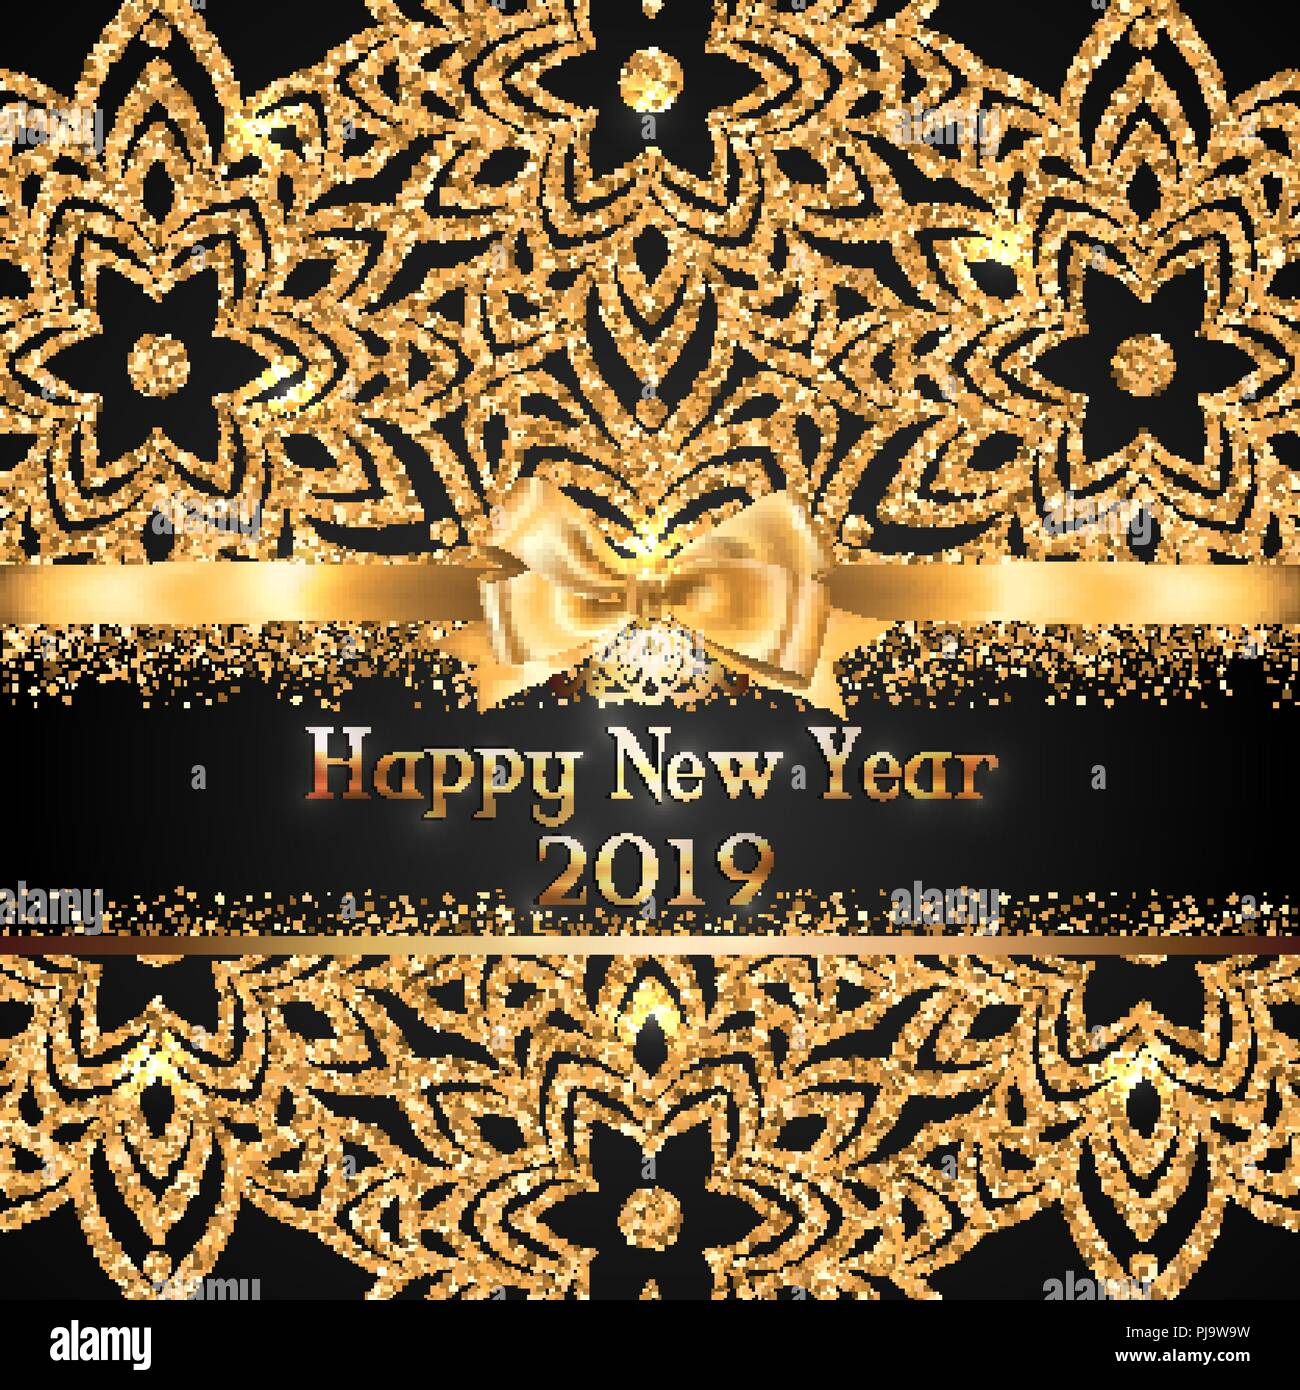 gorgeous and shiny new year greeting card or banner with gold ribbon bow and place for text on black background with sparkly glitter ornamental decora